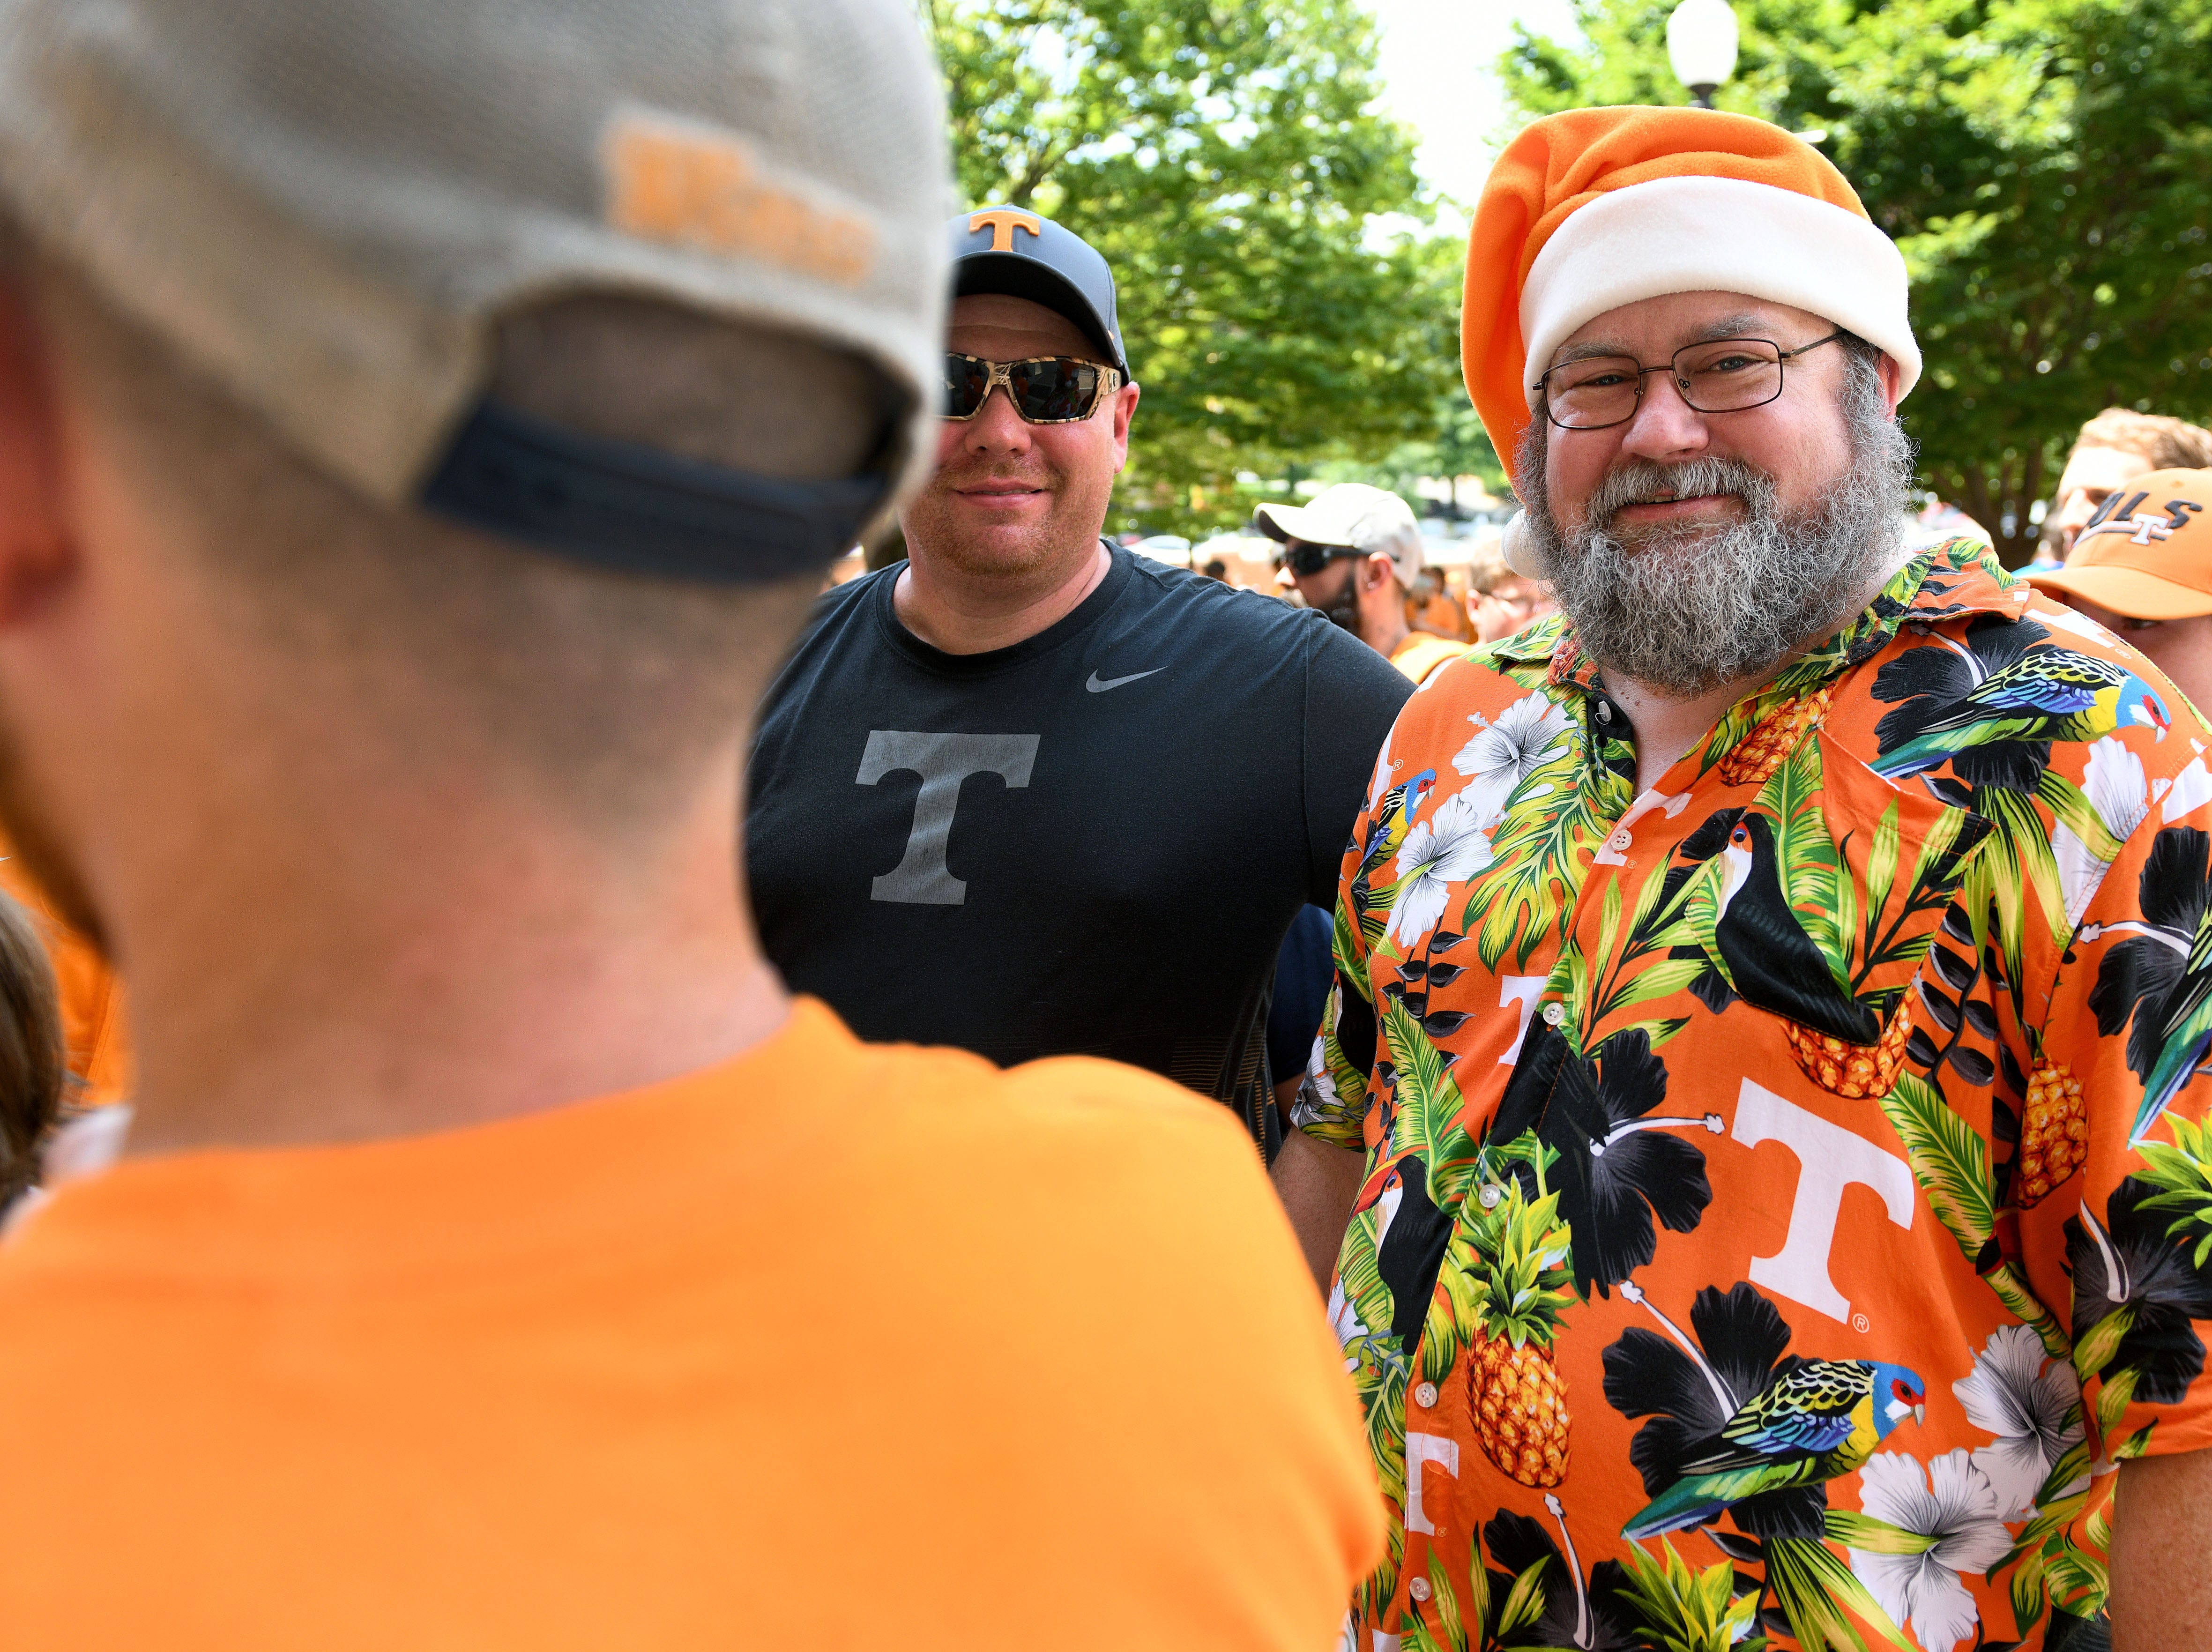 The first 3,000 fans get an armband to go on the field after practice and get an autograph during UT football Fan Day in Neyland Stadium Sunday, August 5, 2018.